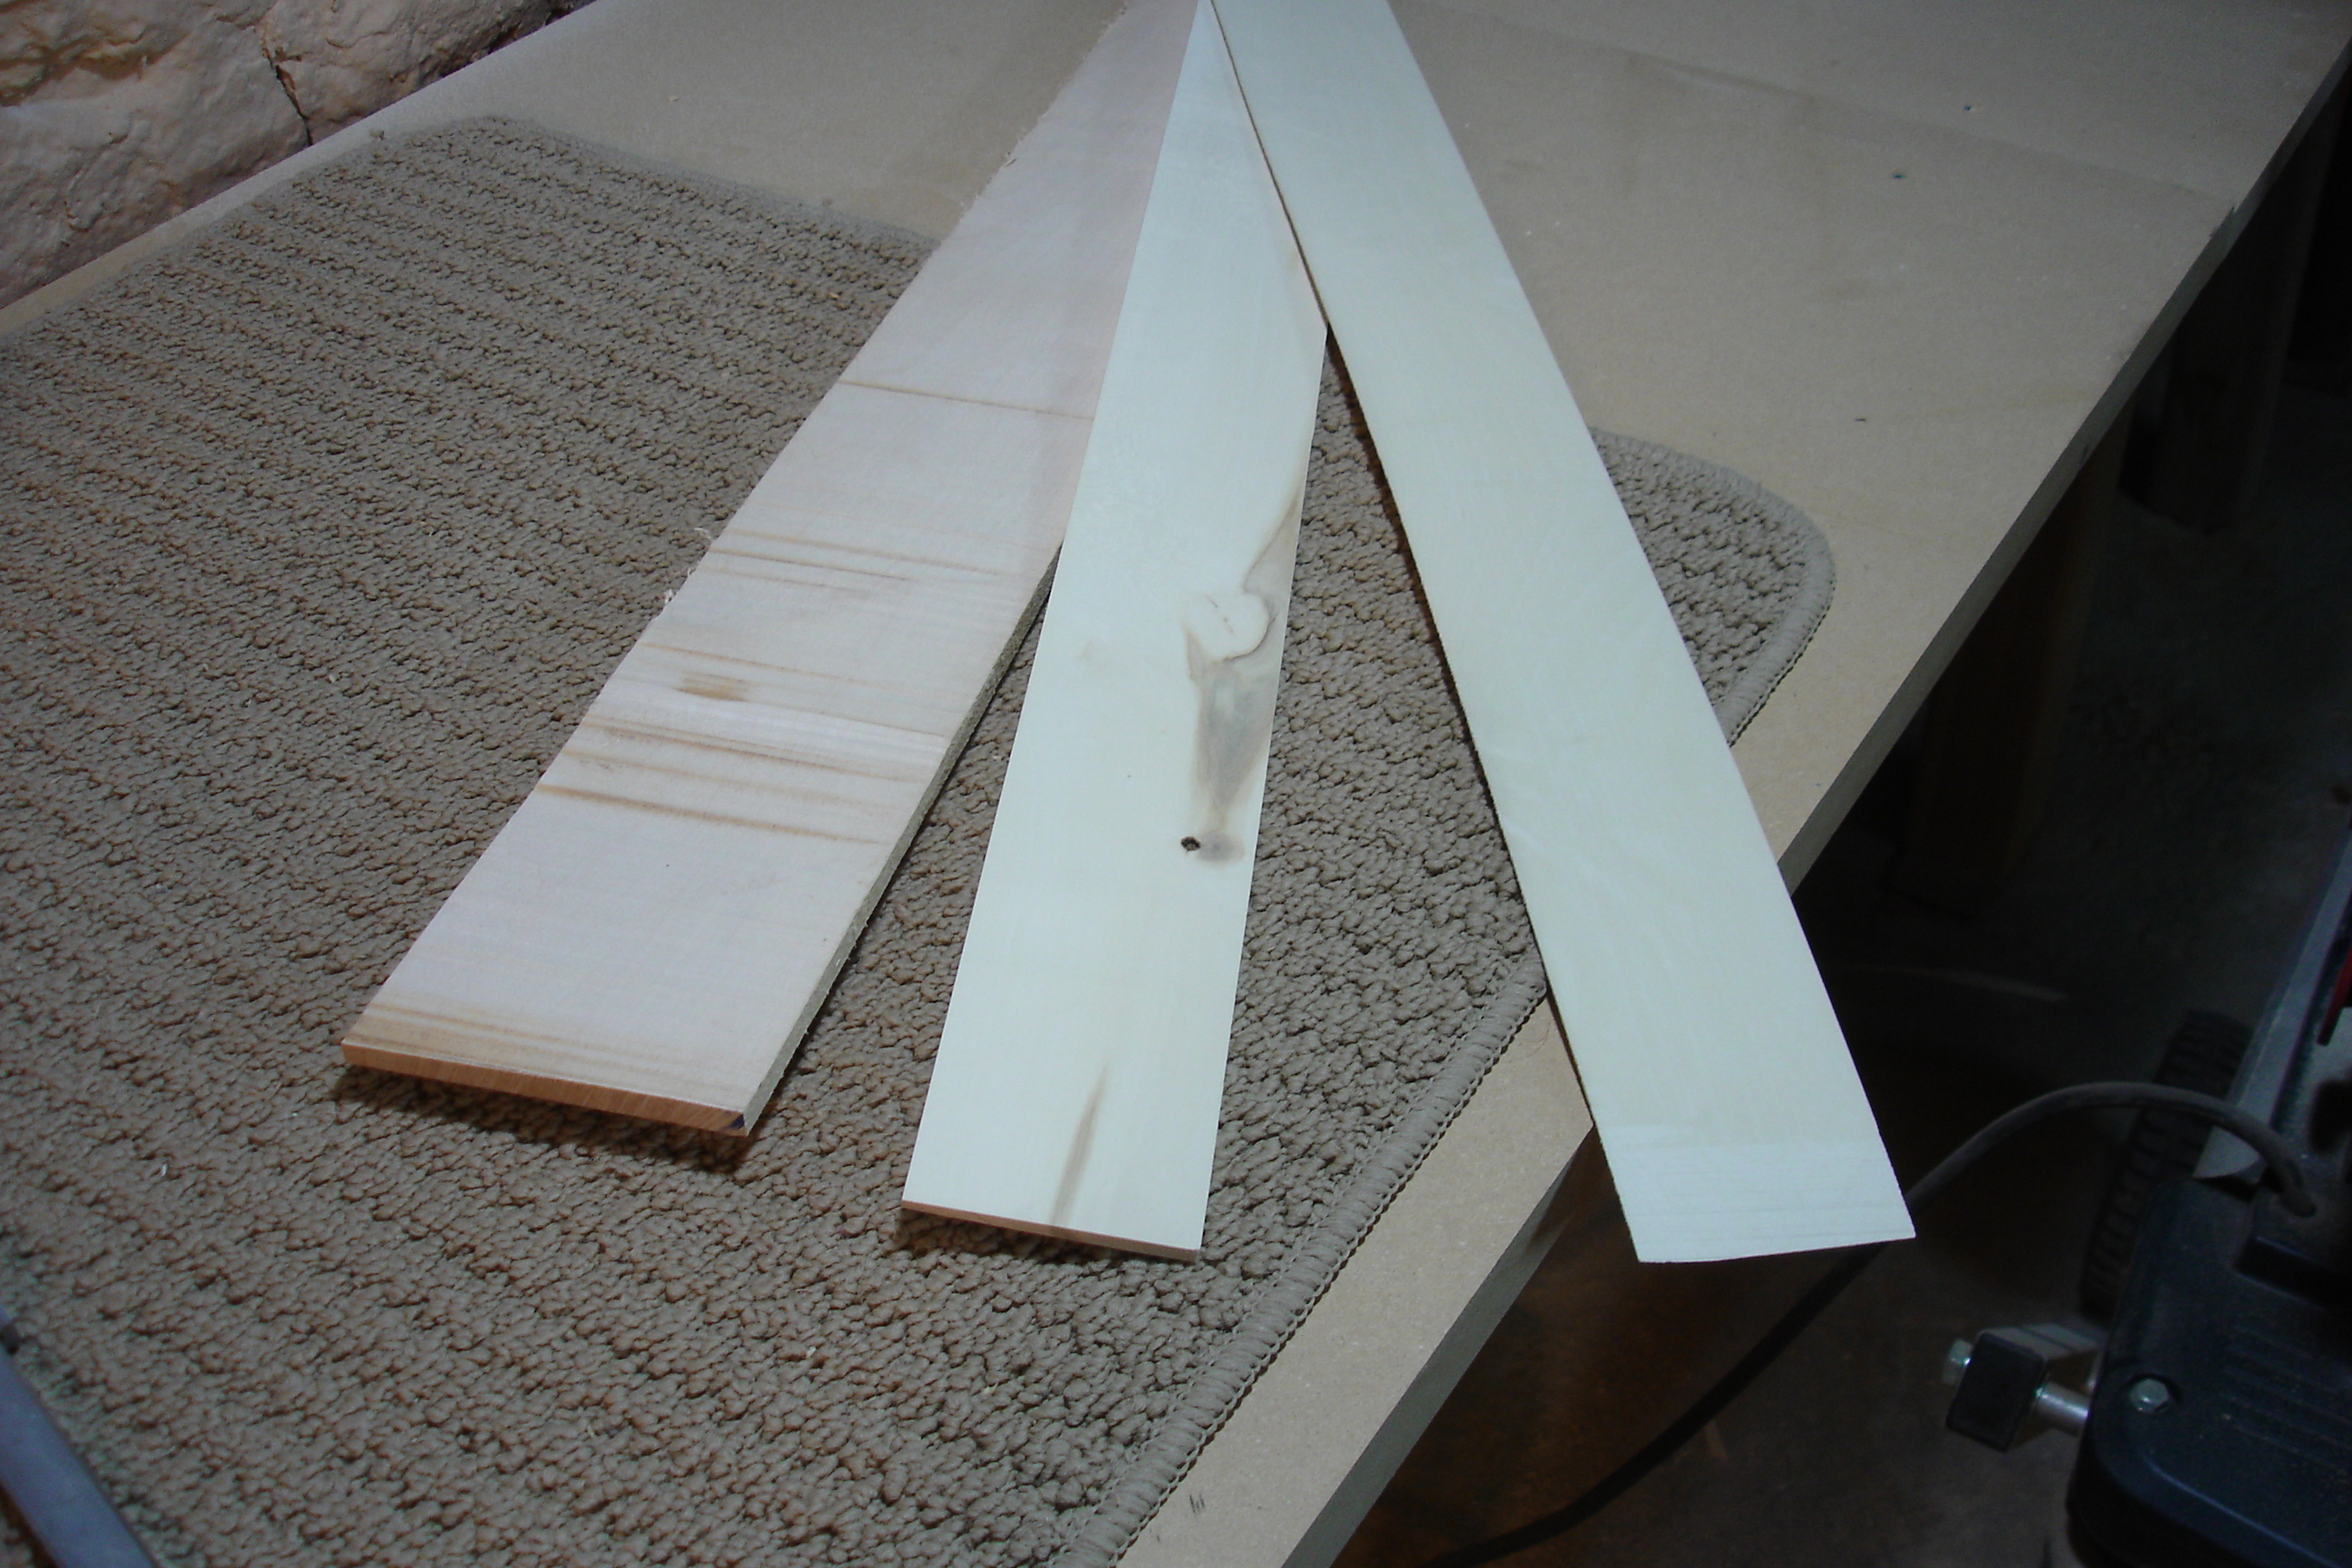 Veneer from start to finish: a solid piece of wood from the supplier (bottom sheet), a resawed unthicknessed piece with one smooth side from the jointer (middle) and a thicknessed veneer (top).